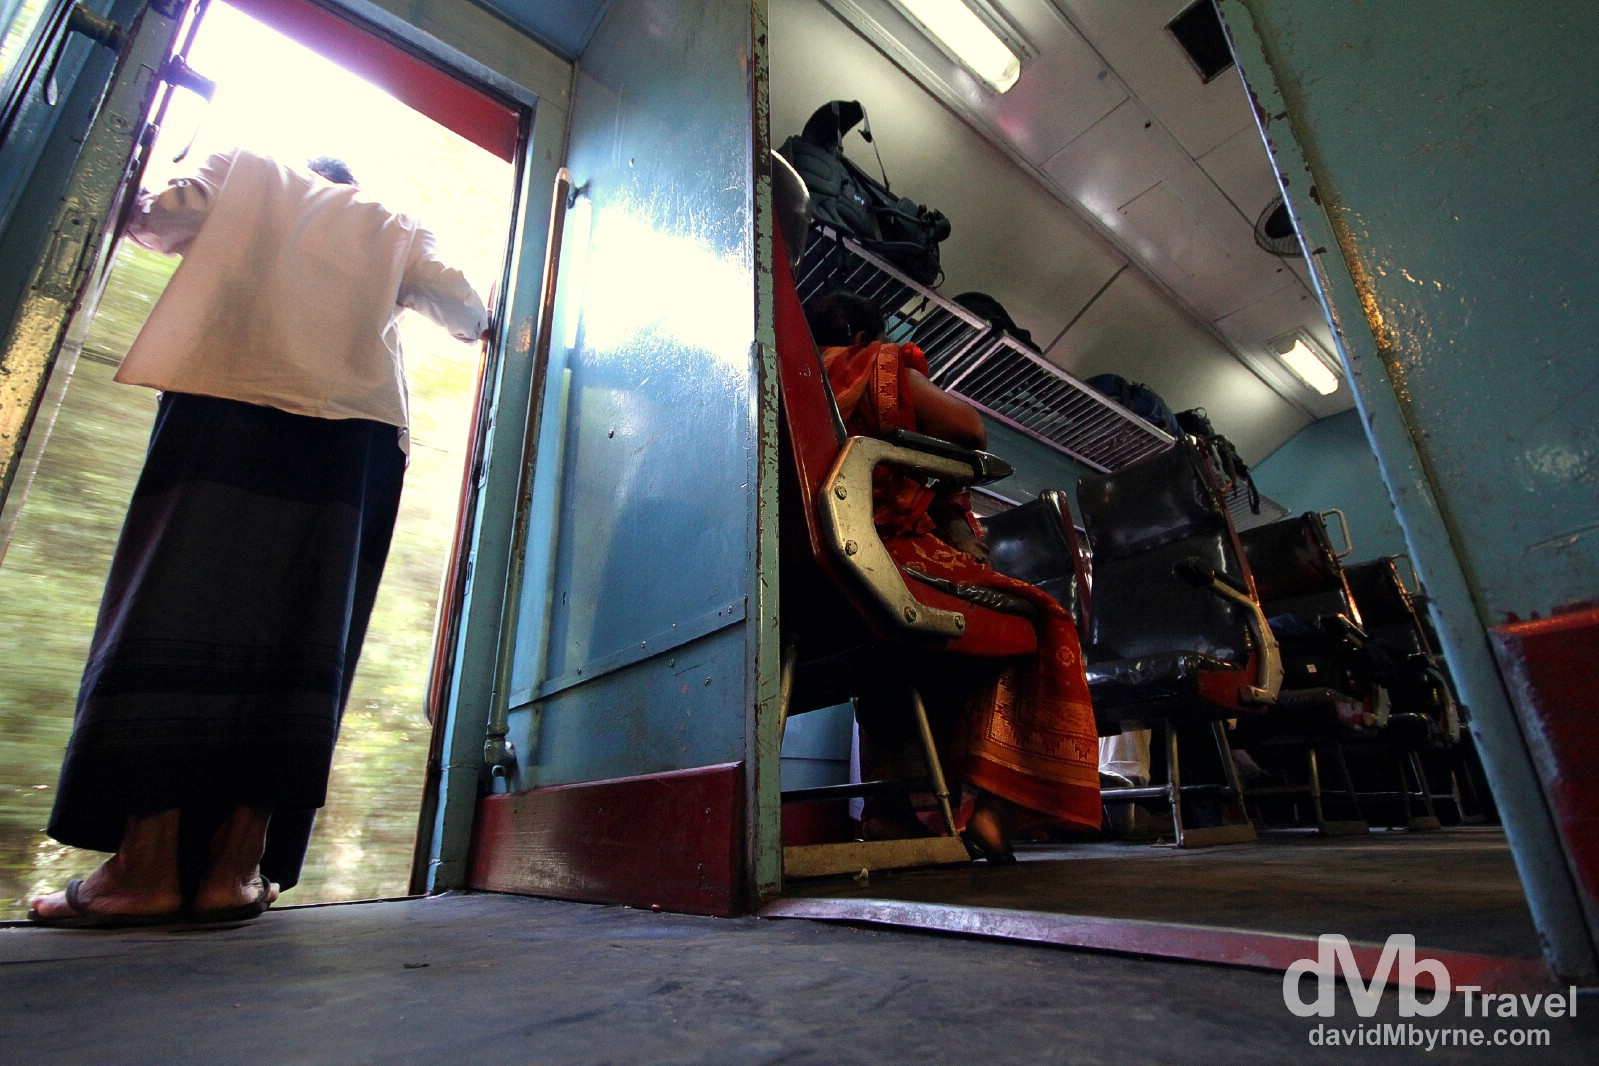 A sparsely populated second class carriage on the Badulla to Colombo train, Sri Lanka. September 5th 2012.